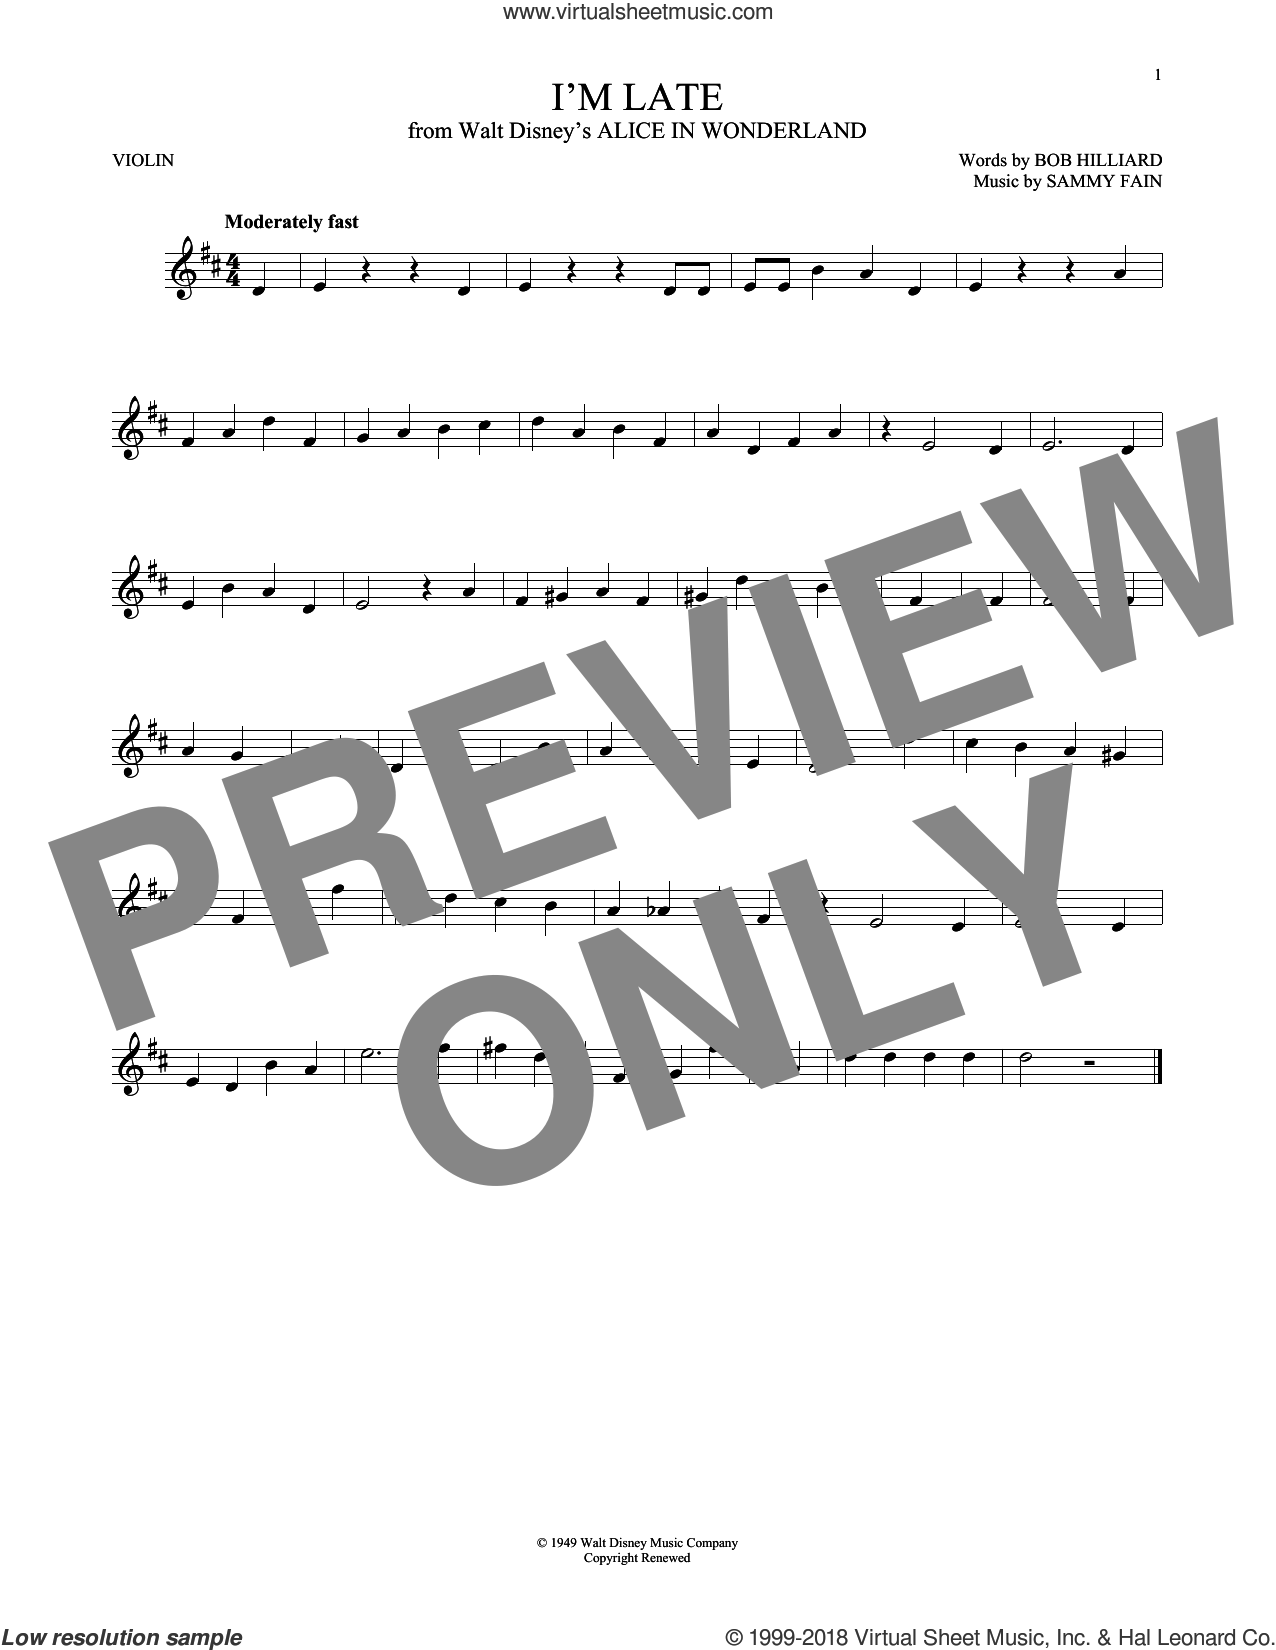 I'm Late sheet music for violin solo by Sammy Fain and Bob Hilliard, intermediate skill level